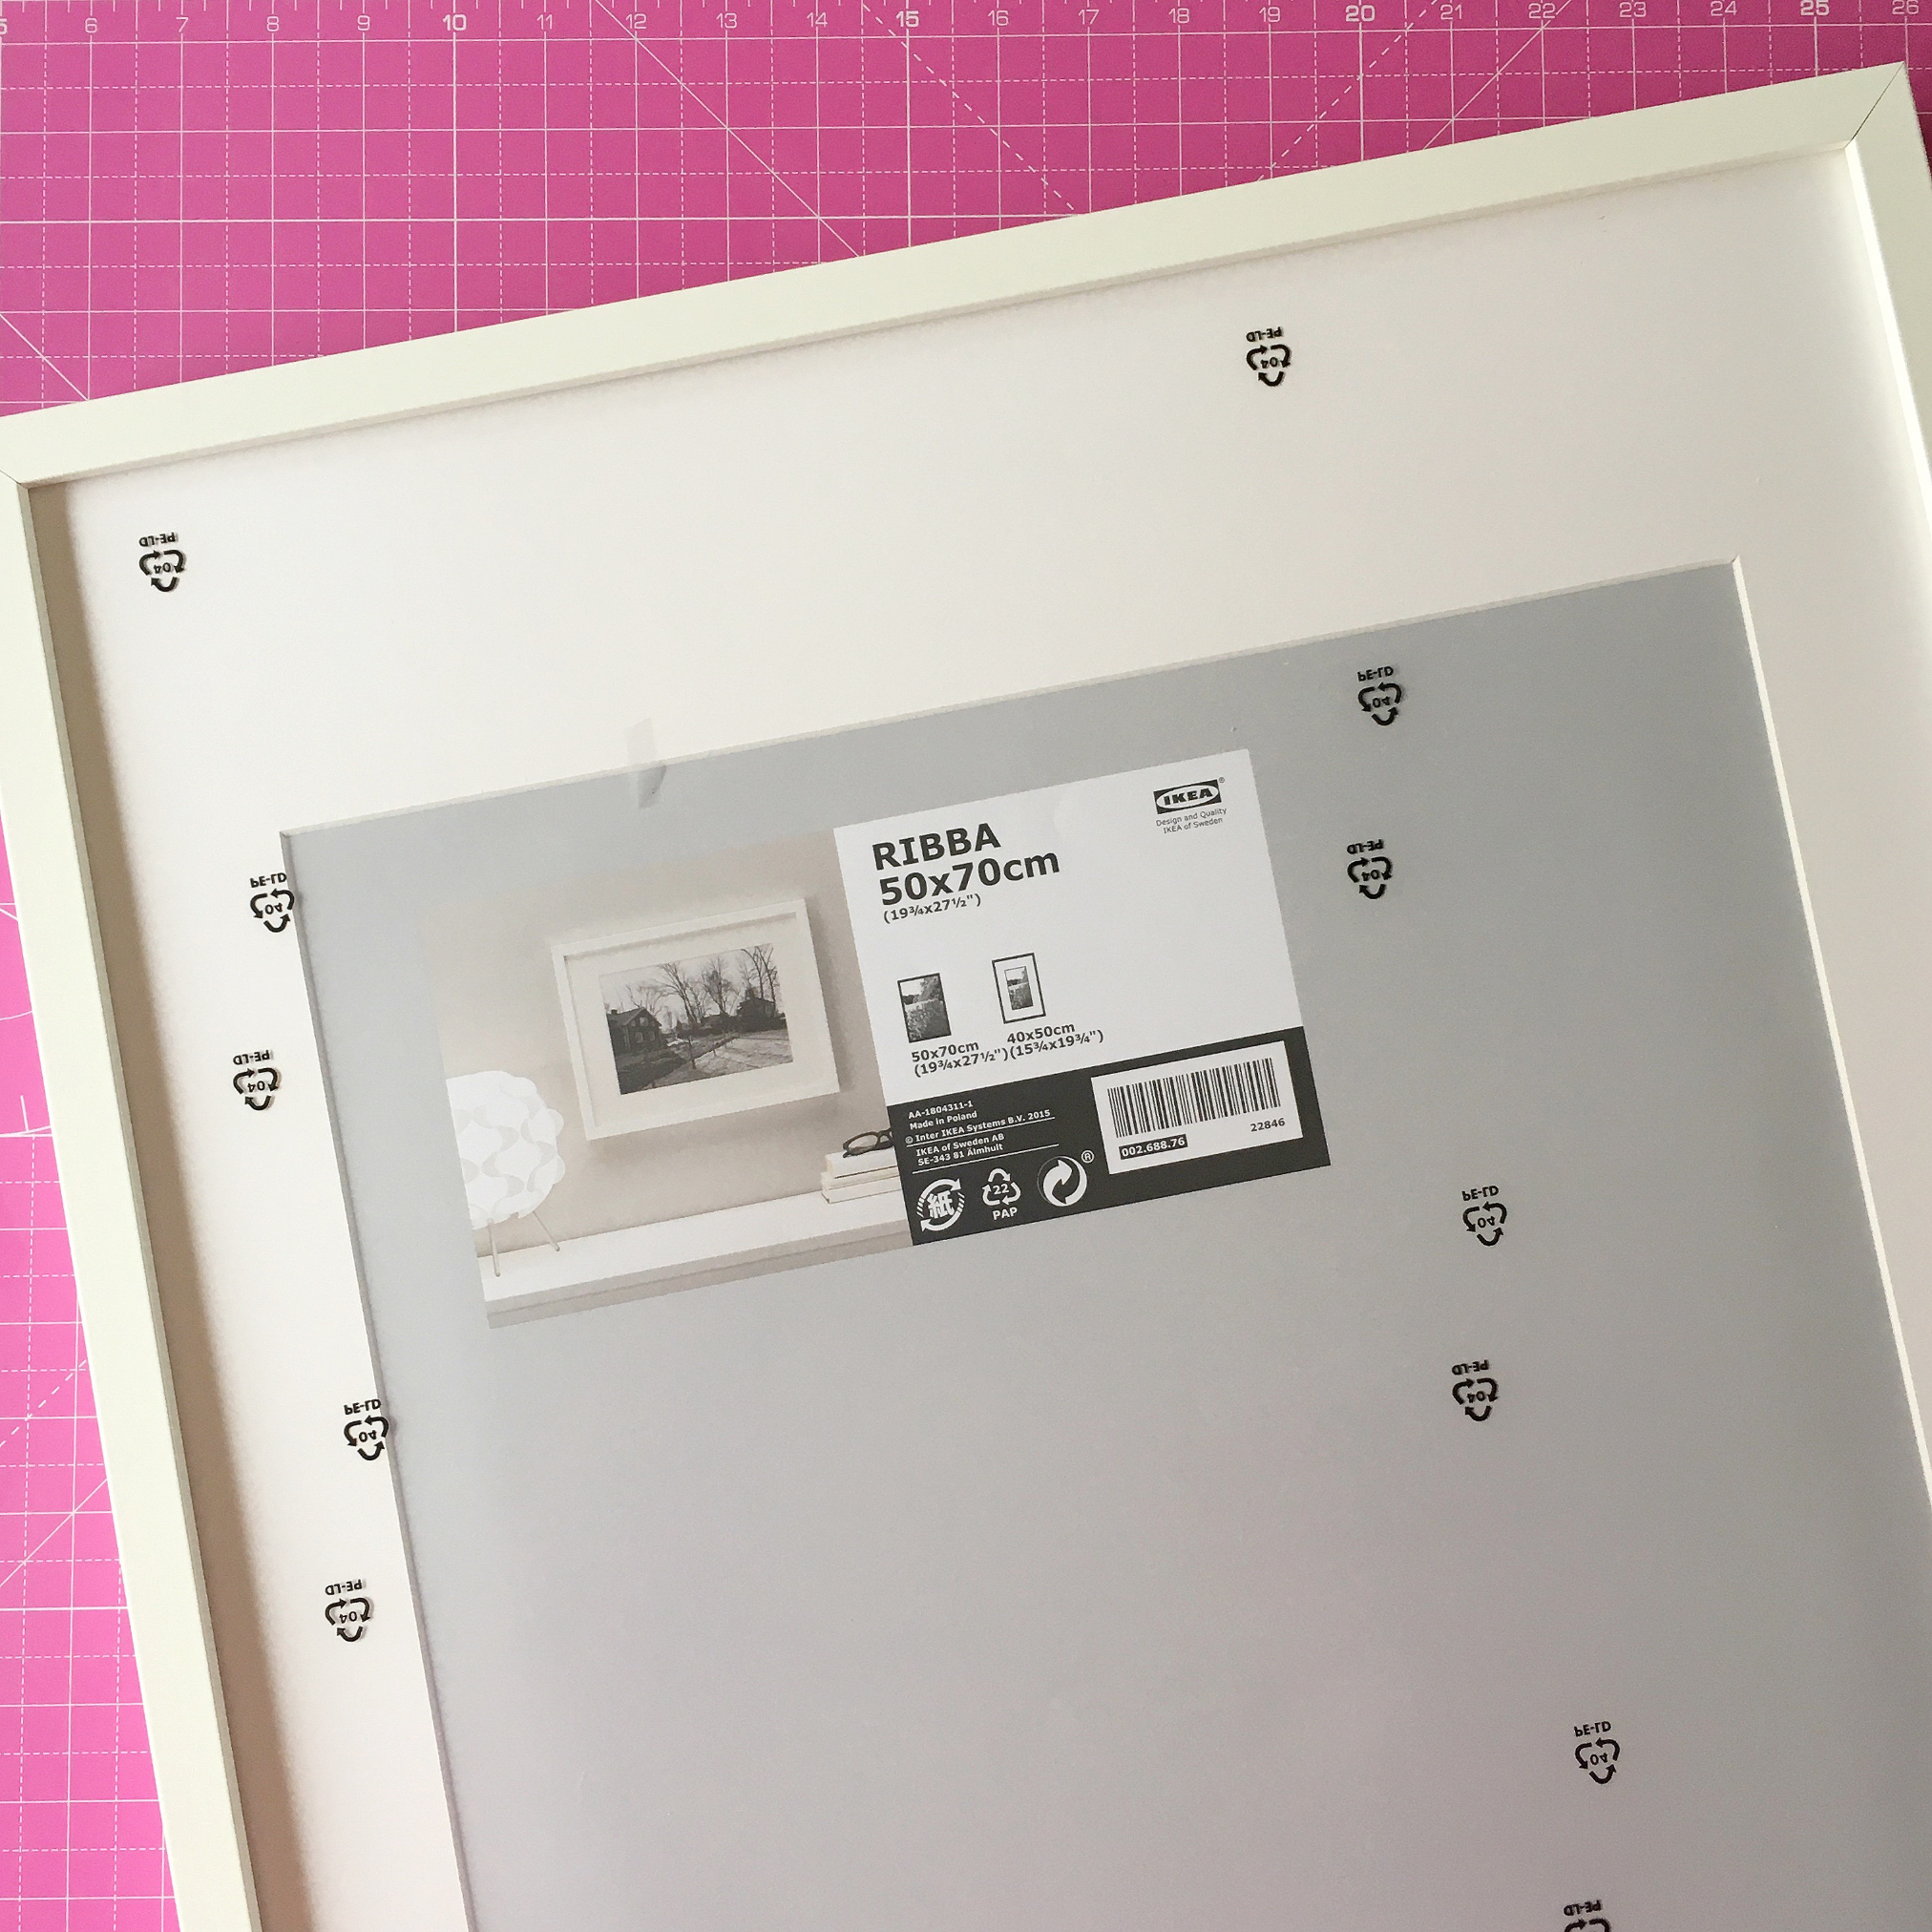 Manifesto Step 4 ribba frame | Hello! Hooray!